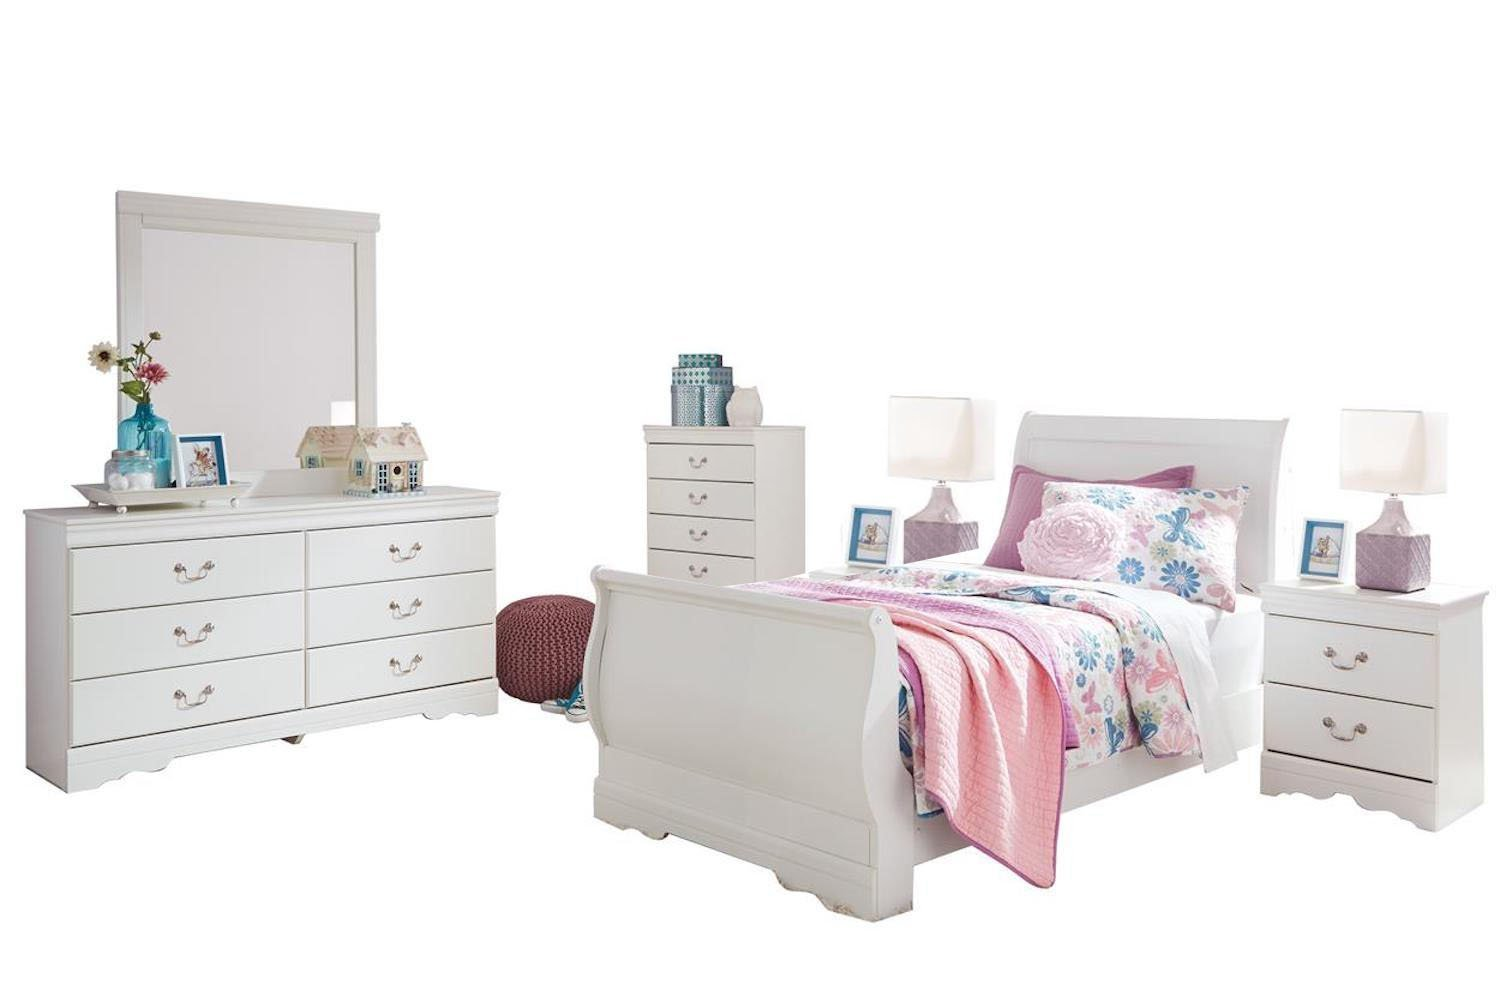 Ashley Furniture 6 Piece Twin Bedroom Set For Girl Free Shipping